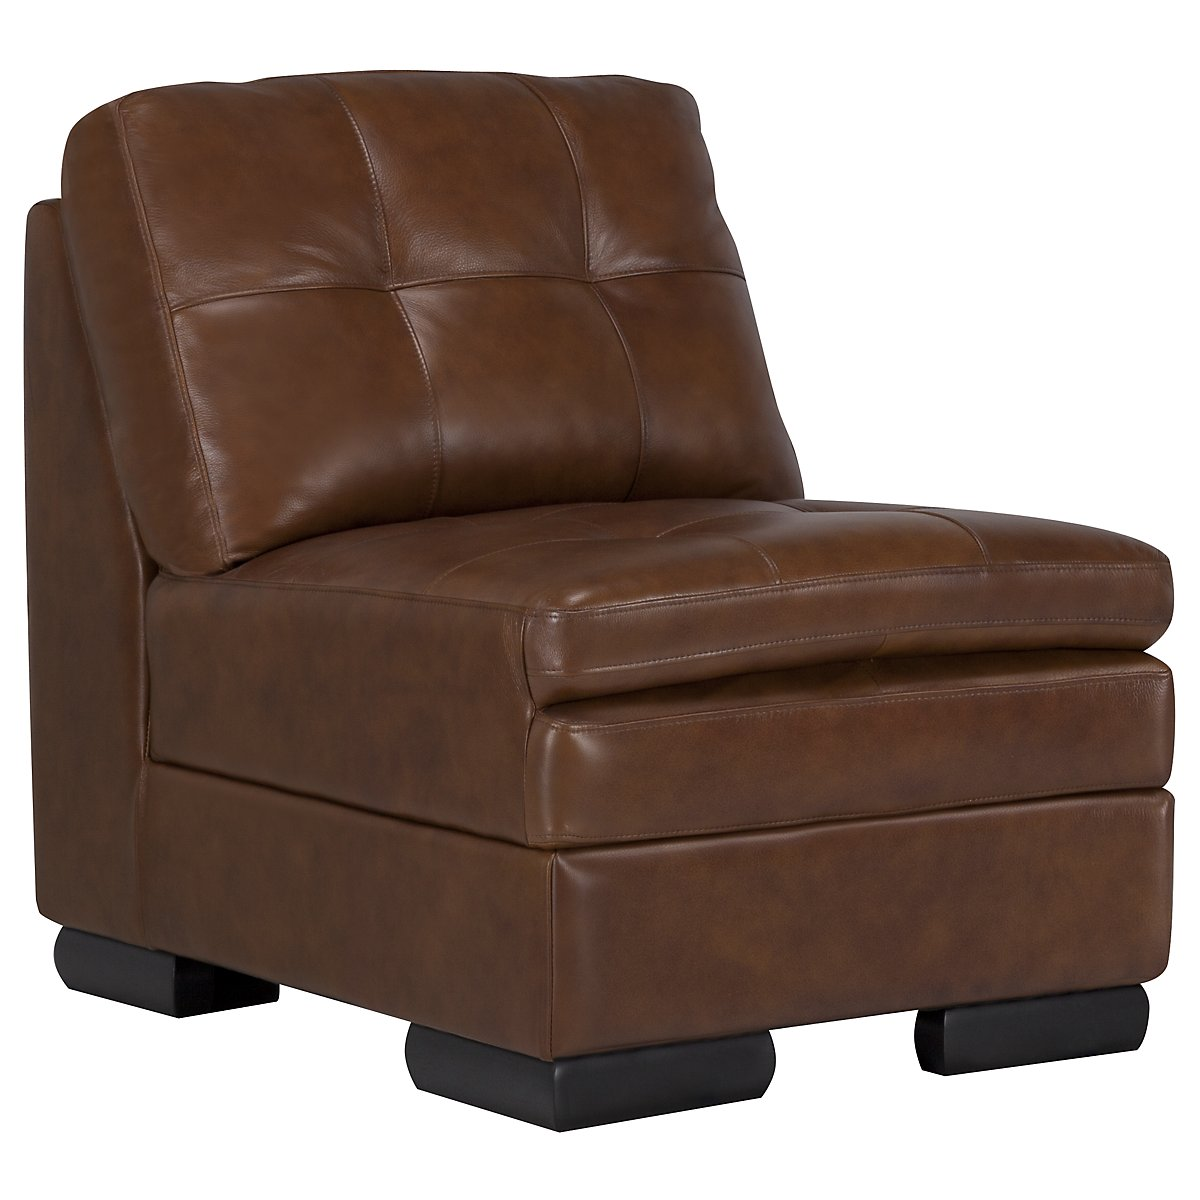 Leather Accent Chair With Ottoman City Furniture Trevor Md Brown Leather Accent Chair